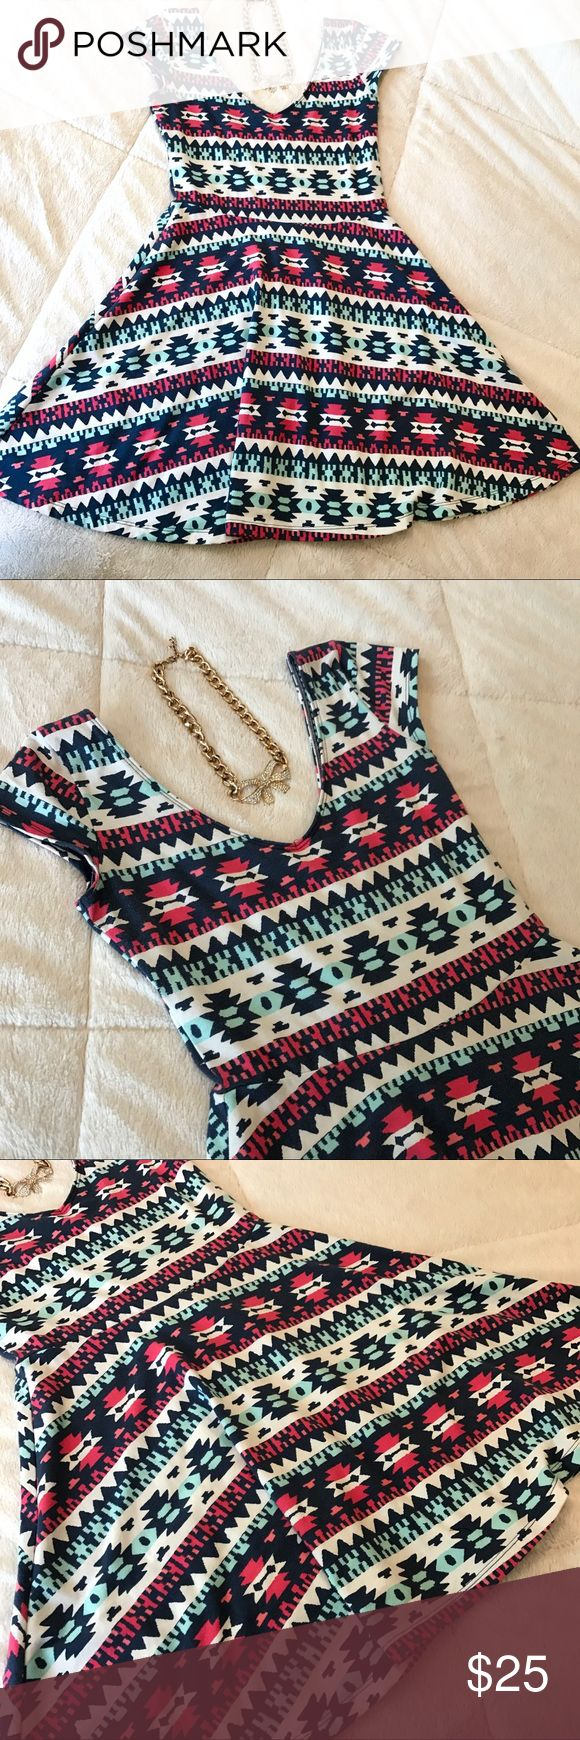 💜Beautiful Hollister Aztec Print Dress💜 EUC! Beautiful and so colorful for summer. Plunging back and neckline. Very comfortable. Hollister Dresses Mini